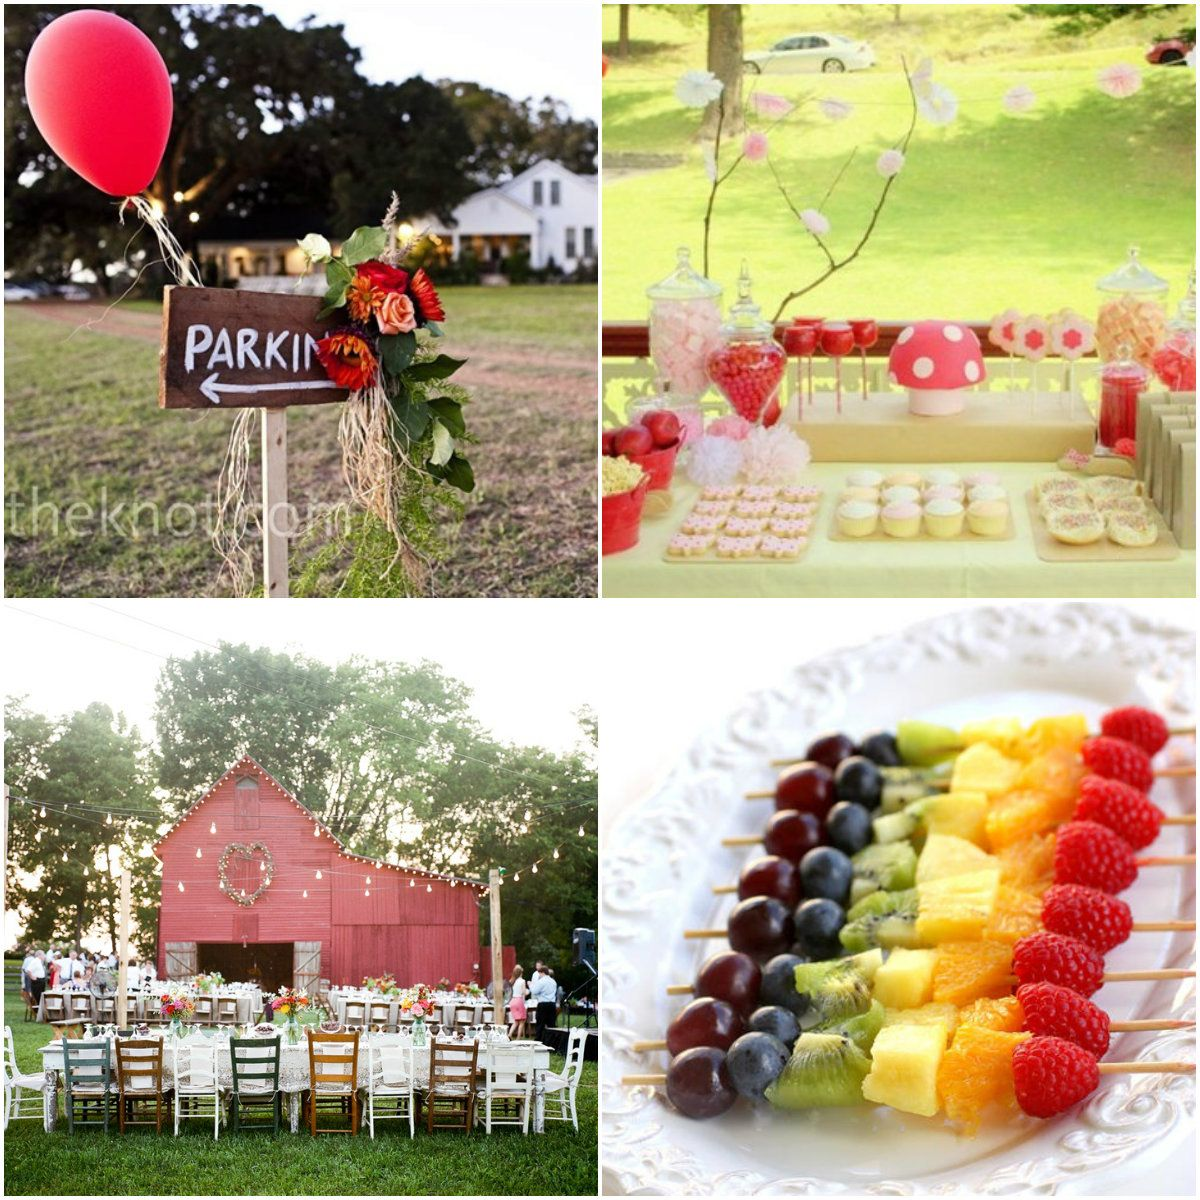 Decoration For Party 18th Birthday Garden Party Decorations Party Ideas